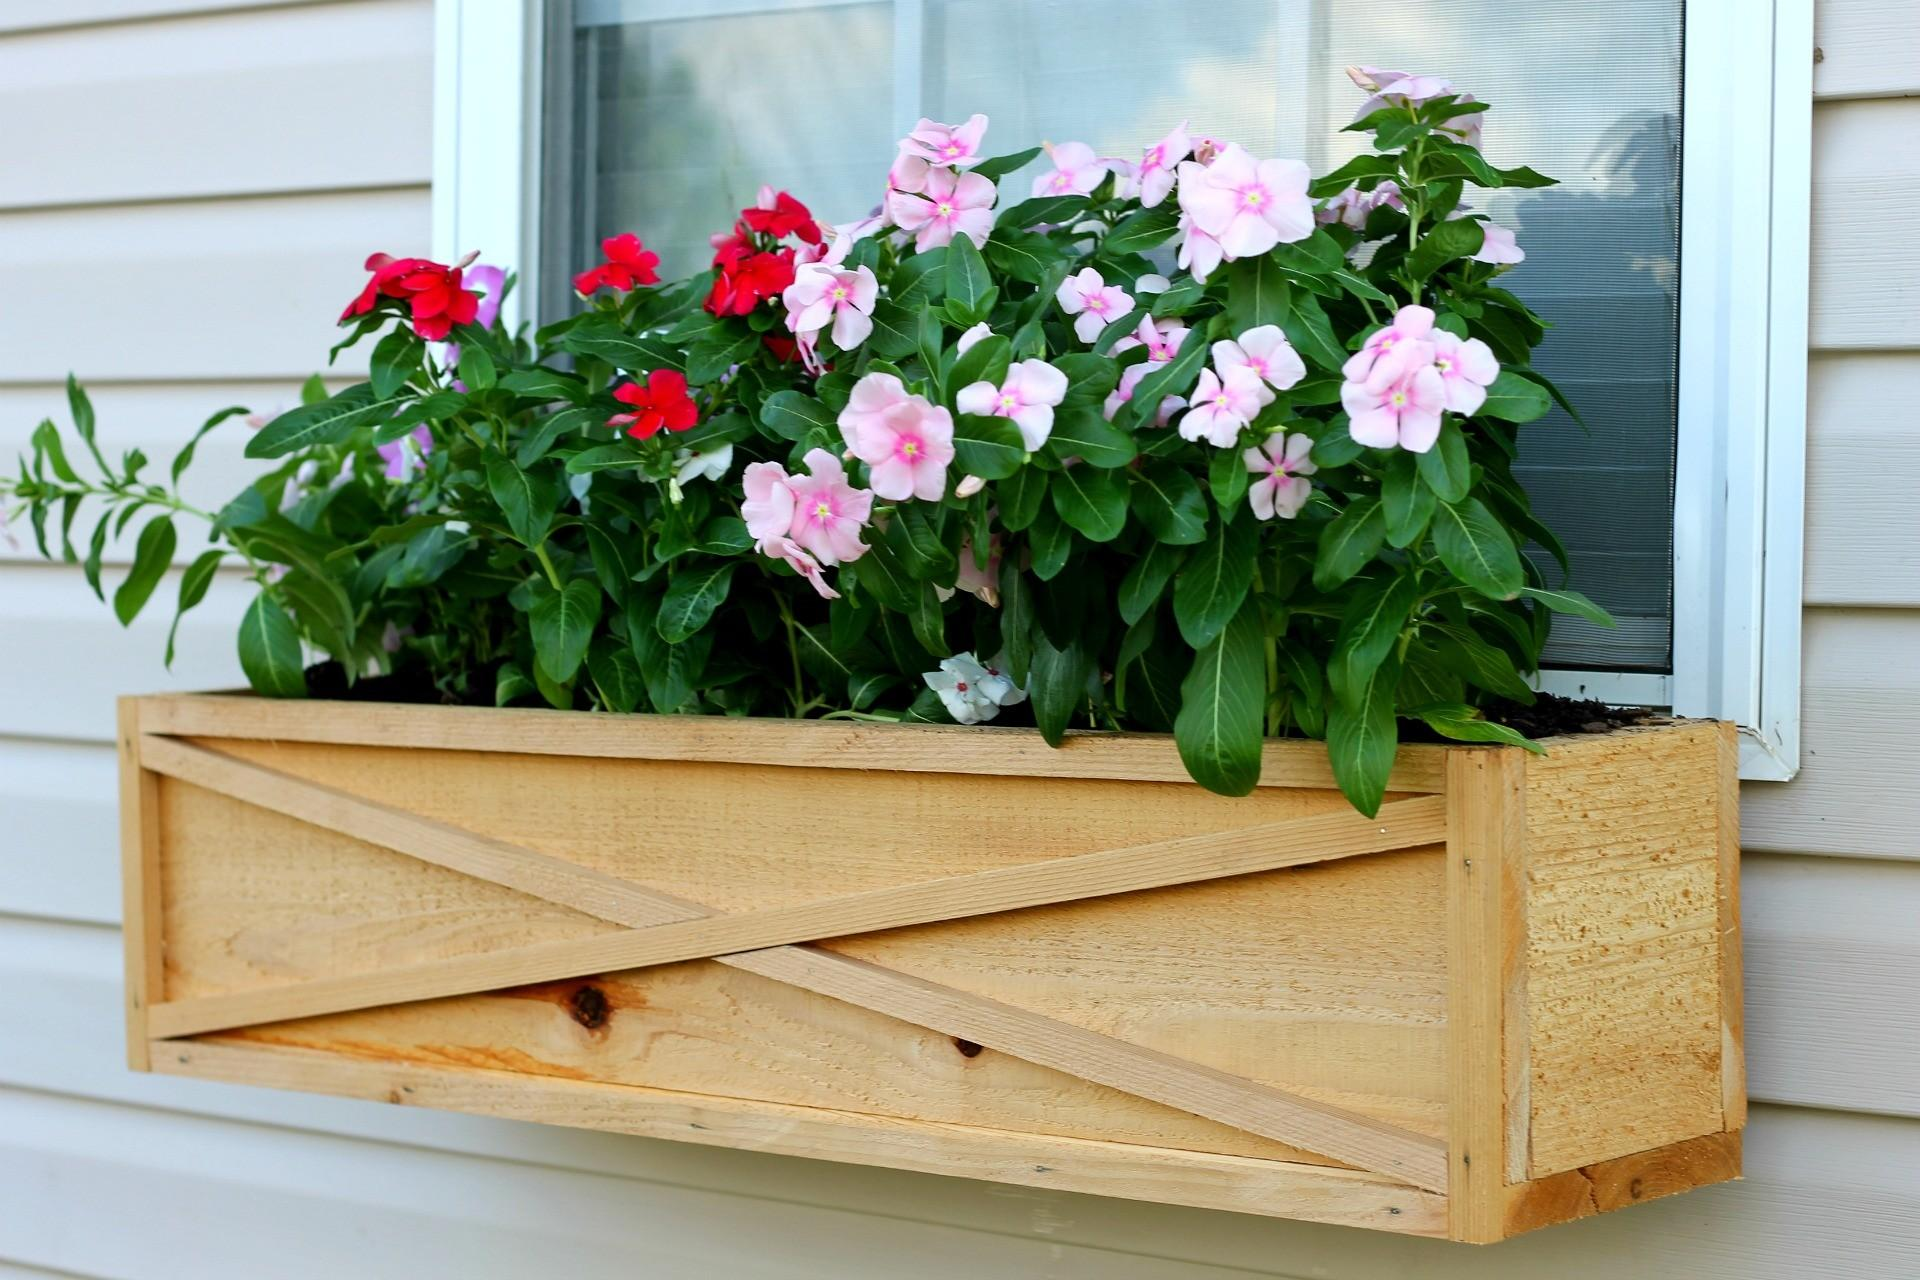 Build Cedar Window Box Planter